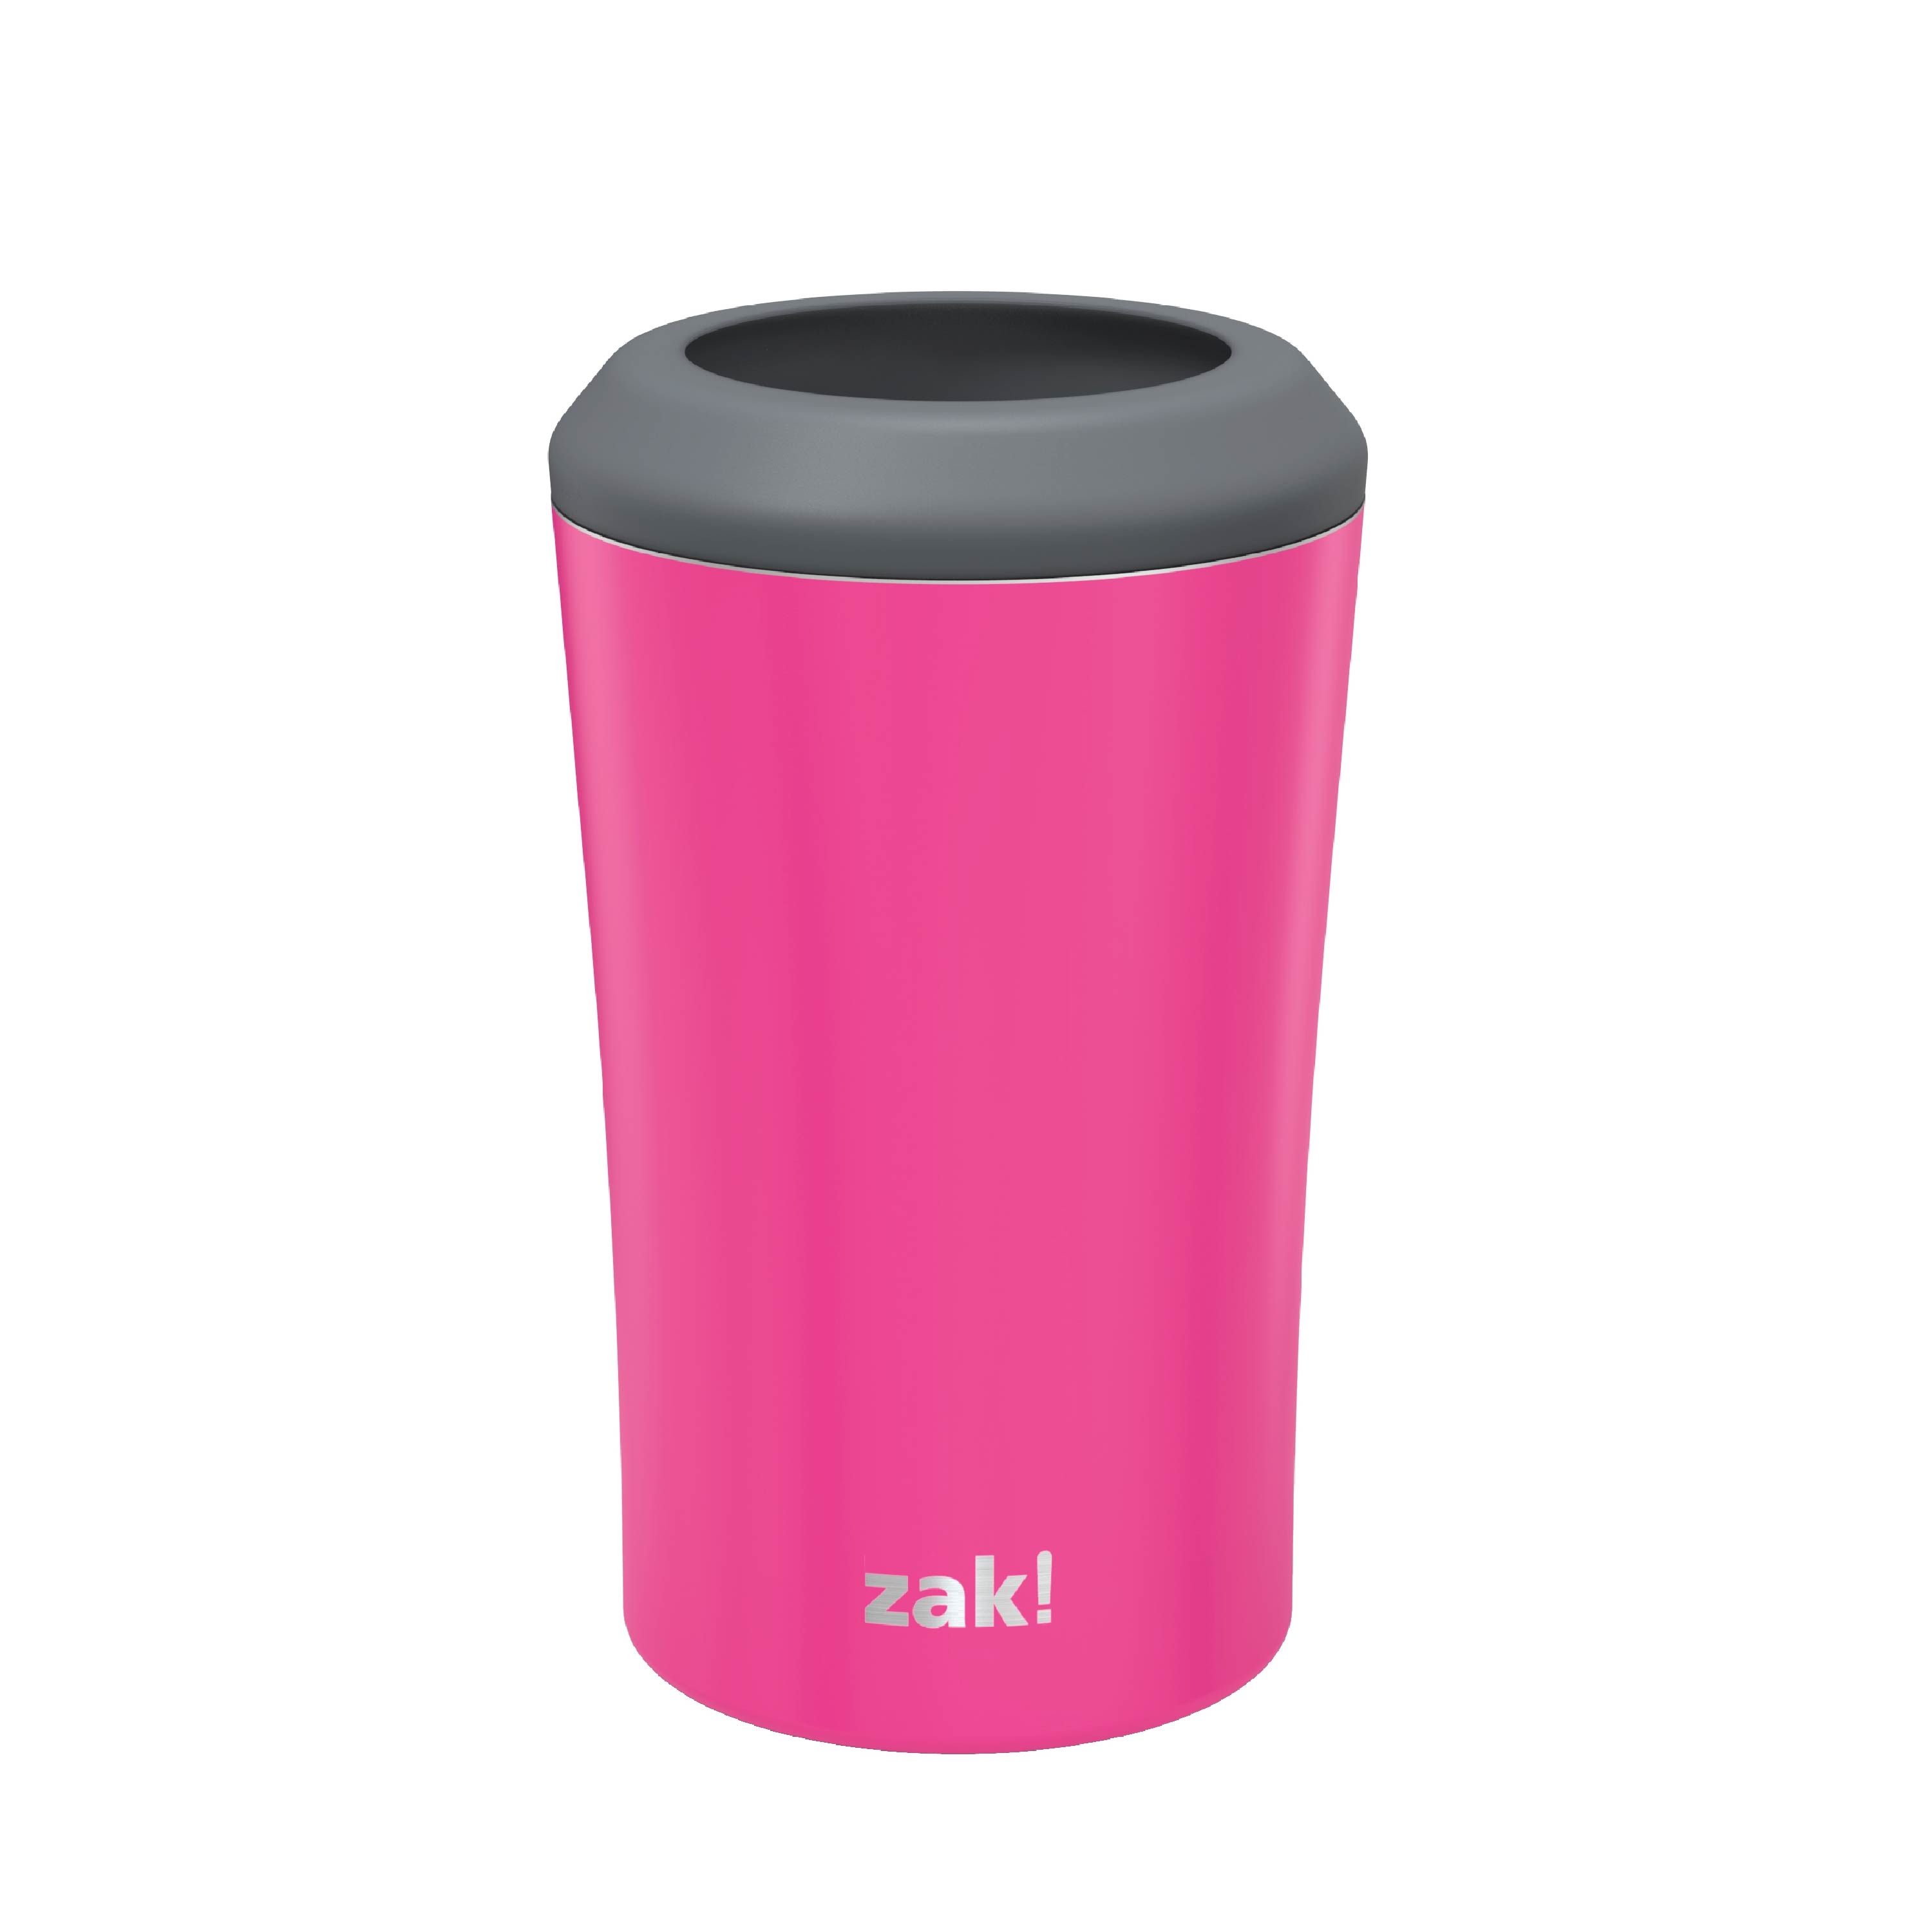 Zak Hydration 12 ounce Double Wall Stainless Steel Can and Bottle Cooler with Vacuum Insulation, Raspberry slideshow image 2